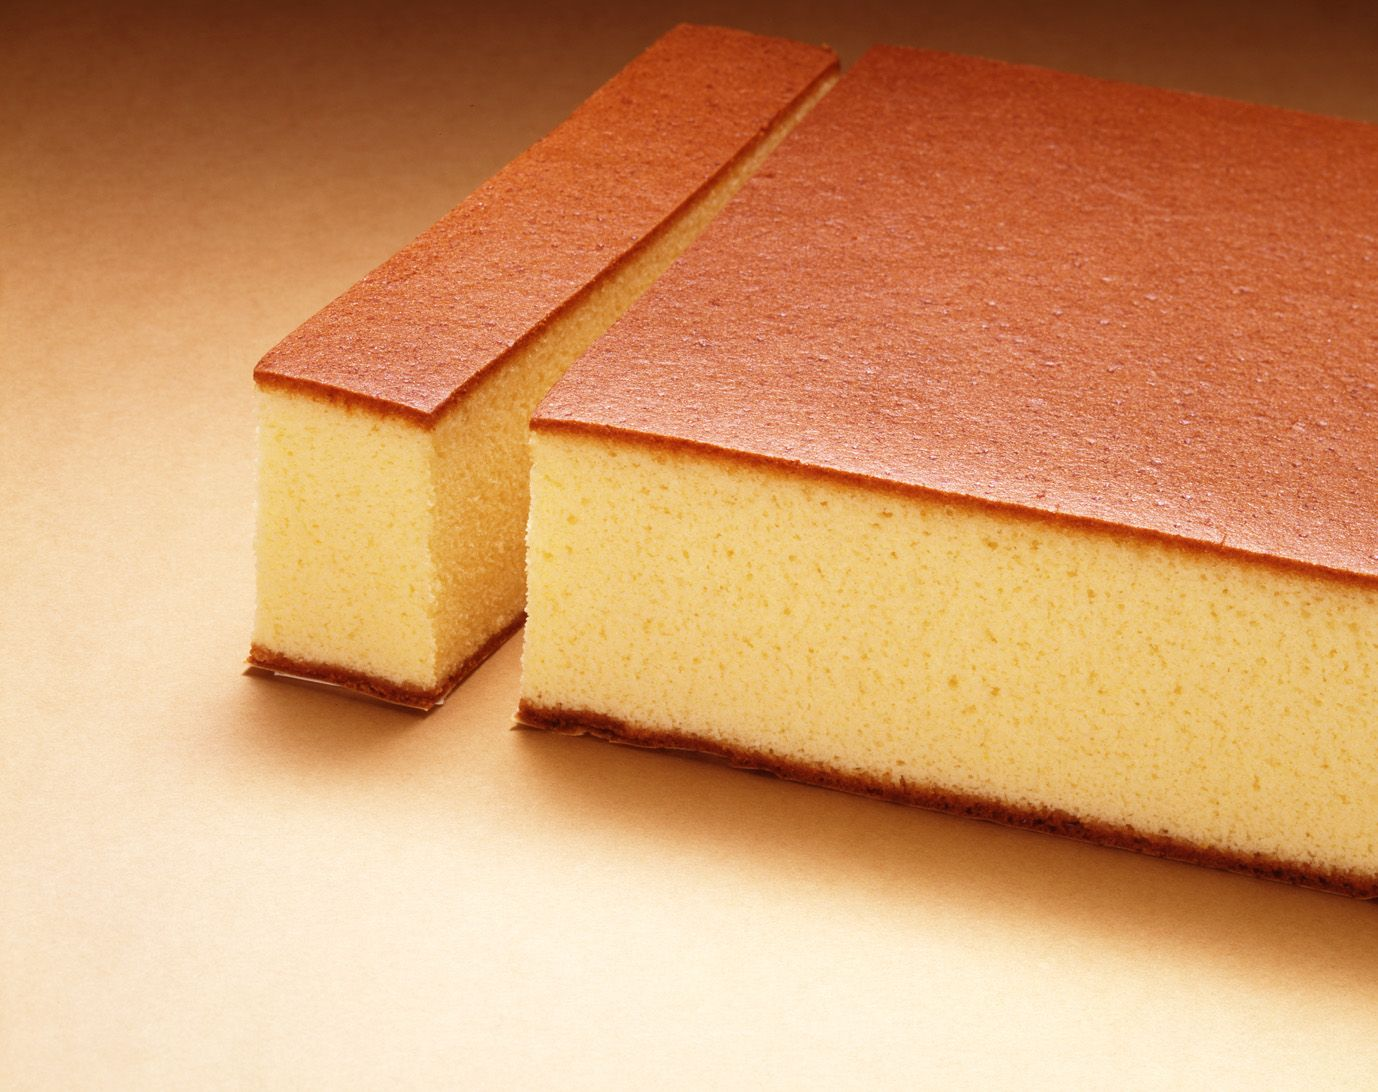 Japanese Sponge Cake Recipe Youtube: Castella Is A Popular Japanese Sponge Cake Made Of Sugar